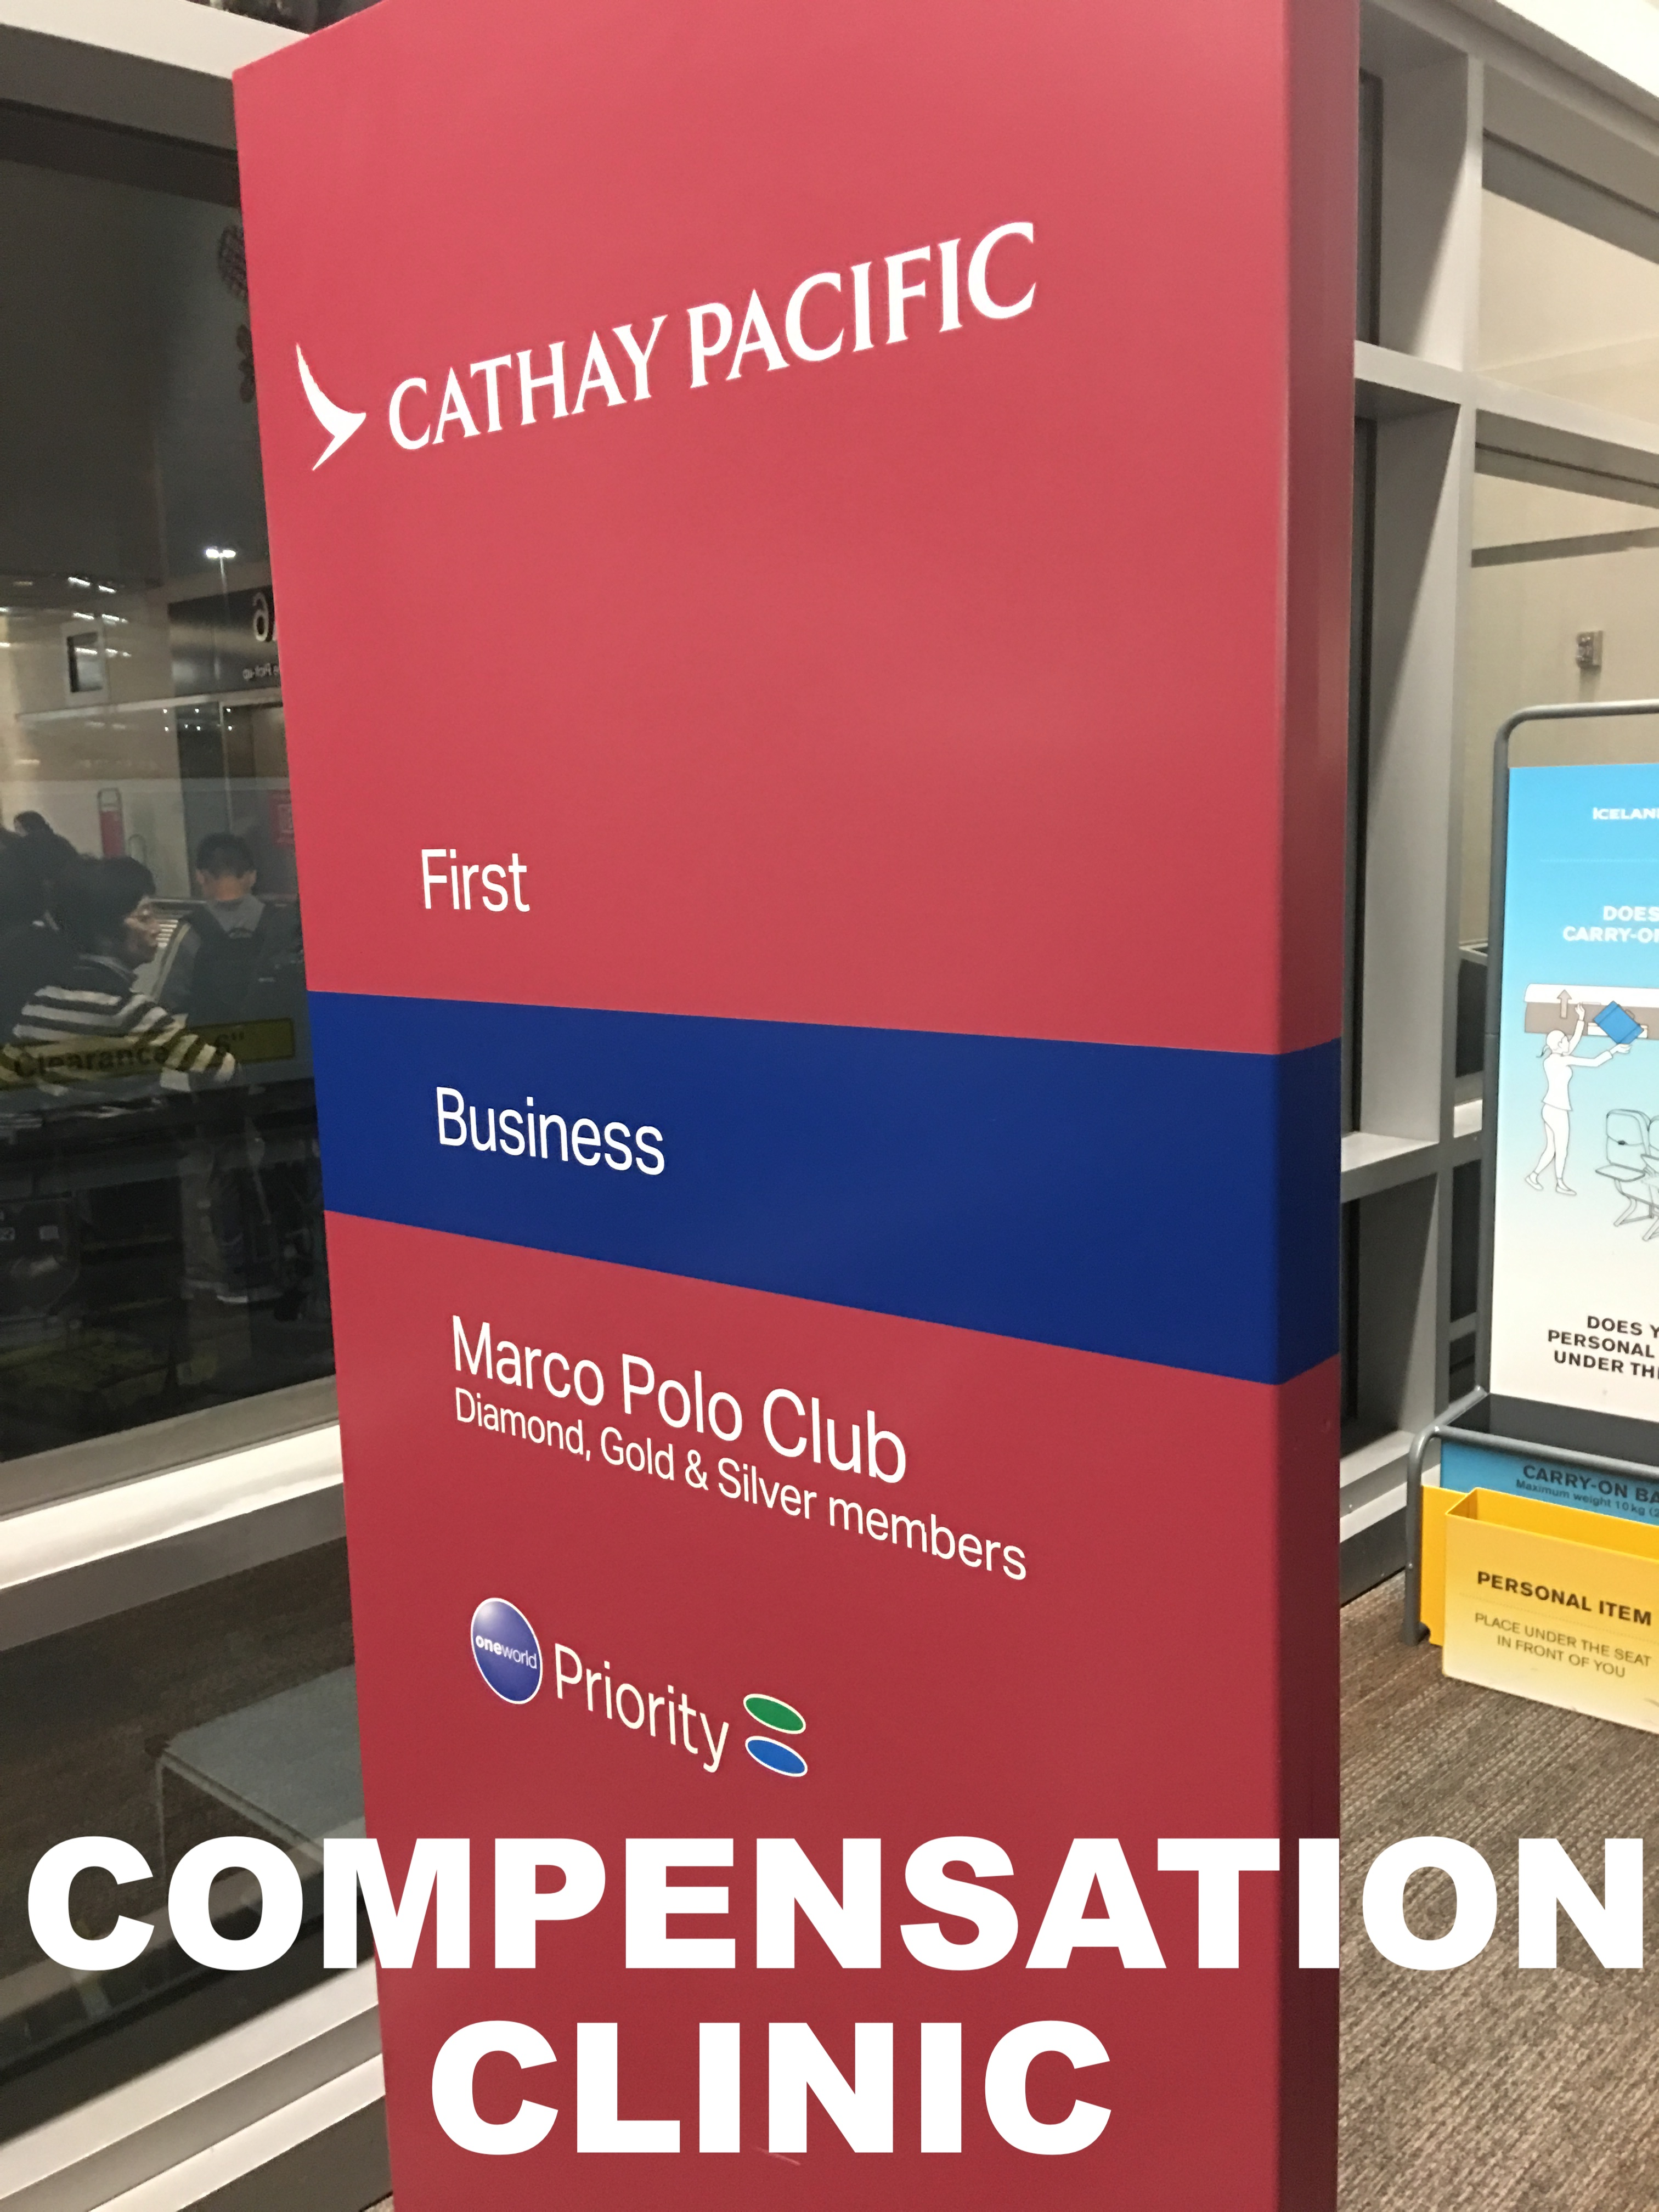 Compensation Clinic: Cathay Pacific First Class Problems